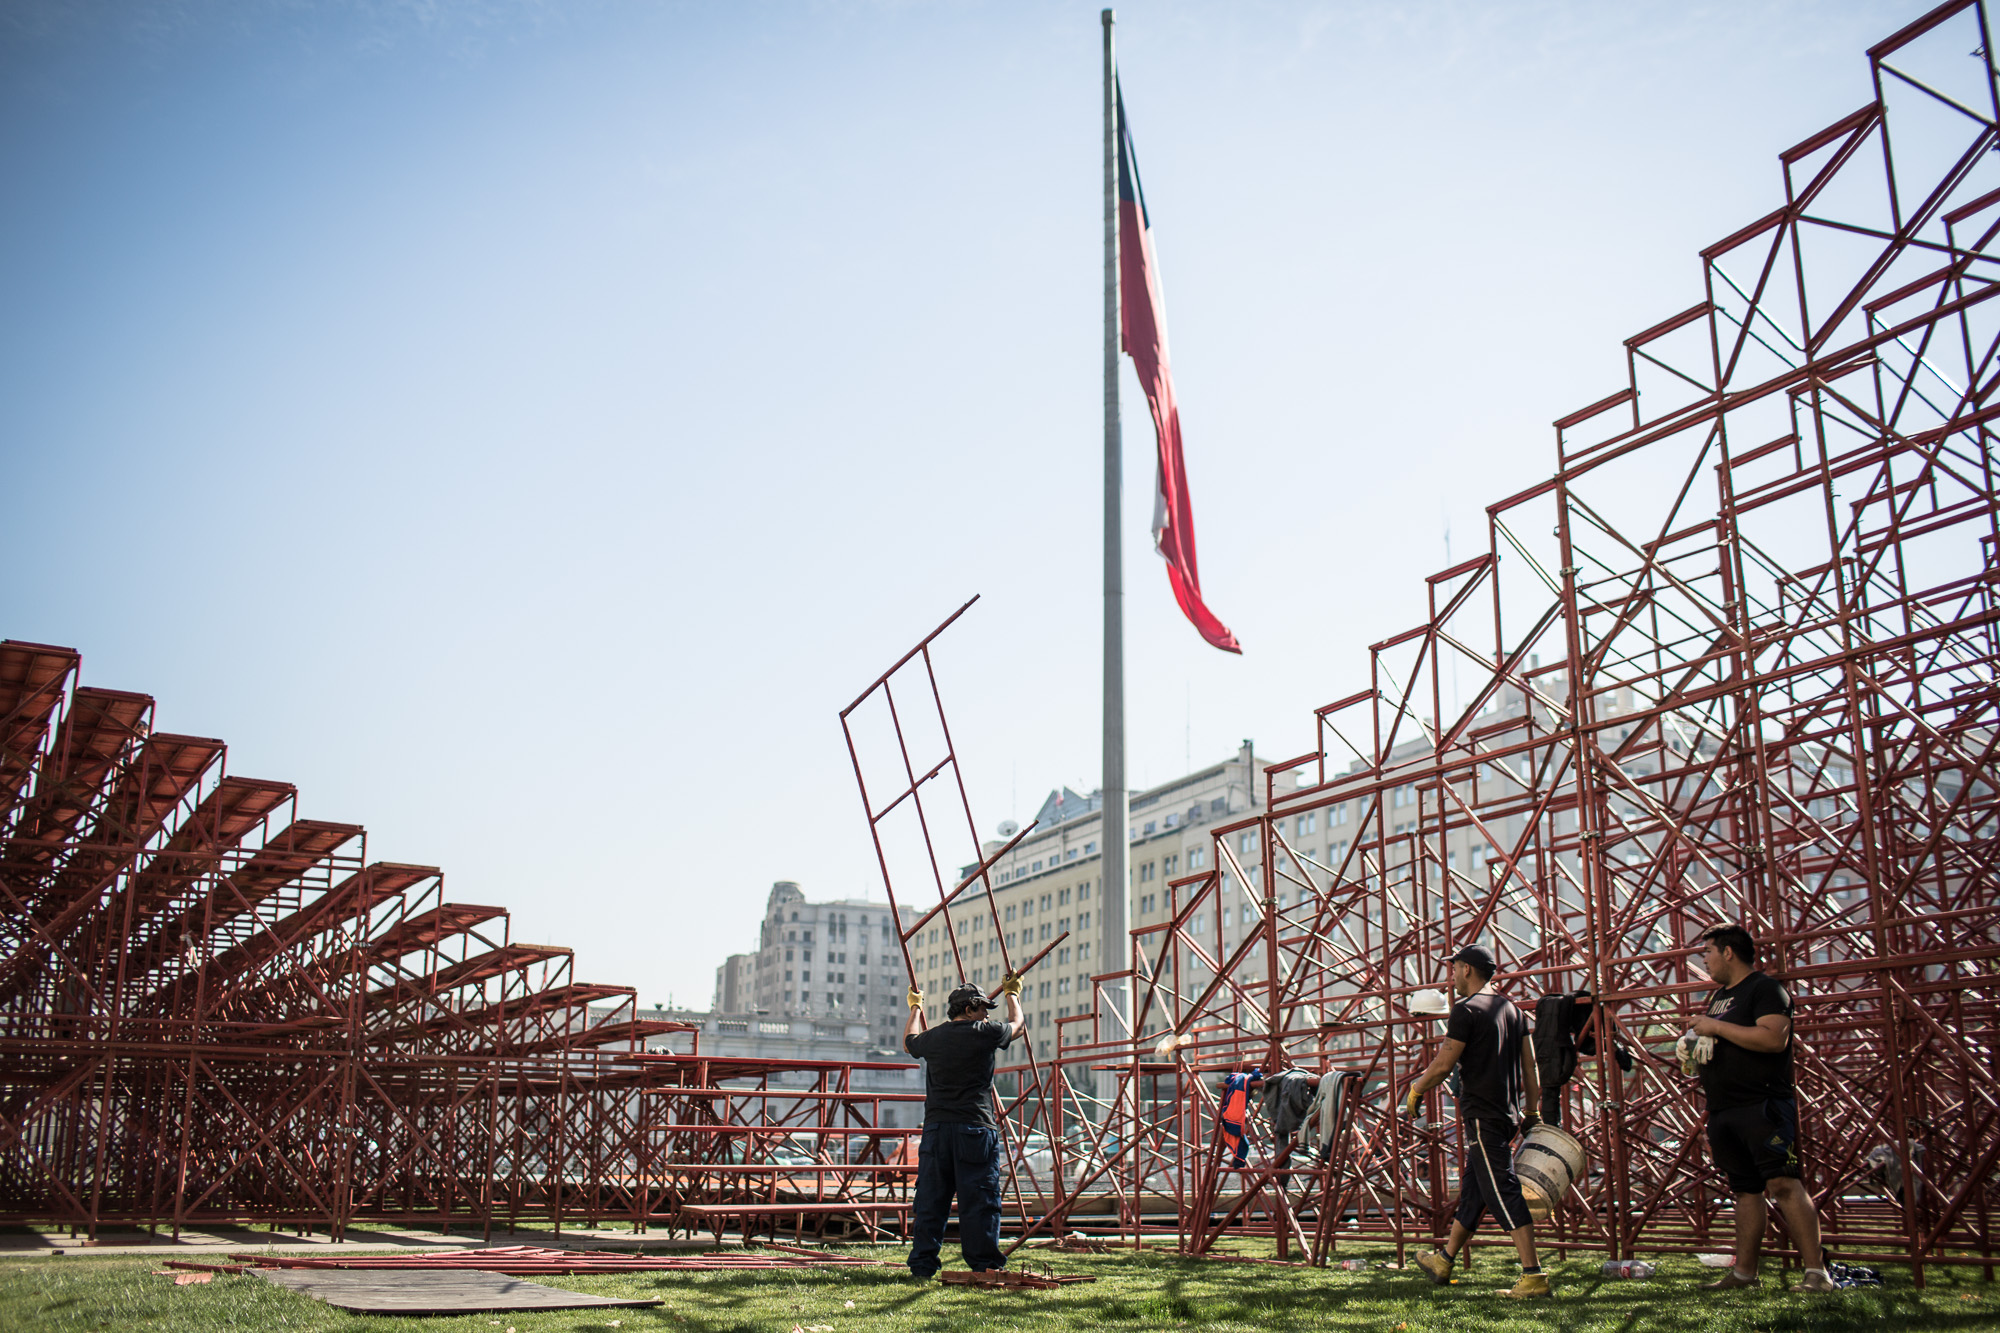 Workers race to construct the large viewing stands around one of the three pitches in Plaza de la Ciudadanía, central Santiago that will play host to the Homeless World Cup.  In only a couple of days, the stands will be packed with hundreds of fans, as the teams and event volunteers from around the world arrive in the bustling south American city.